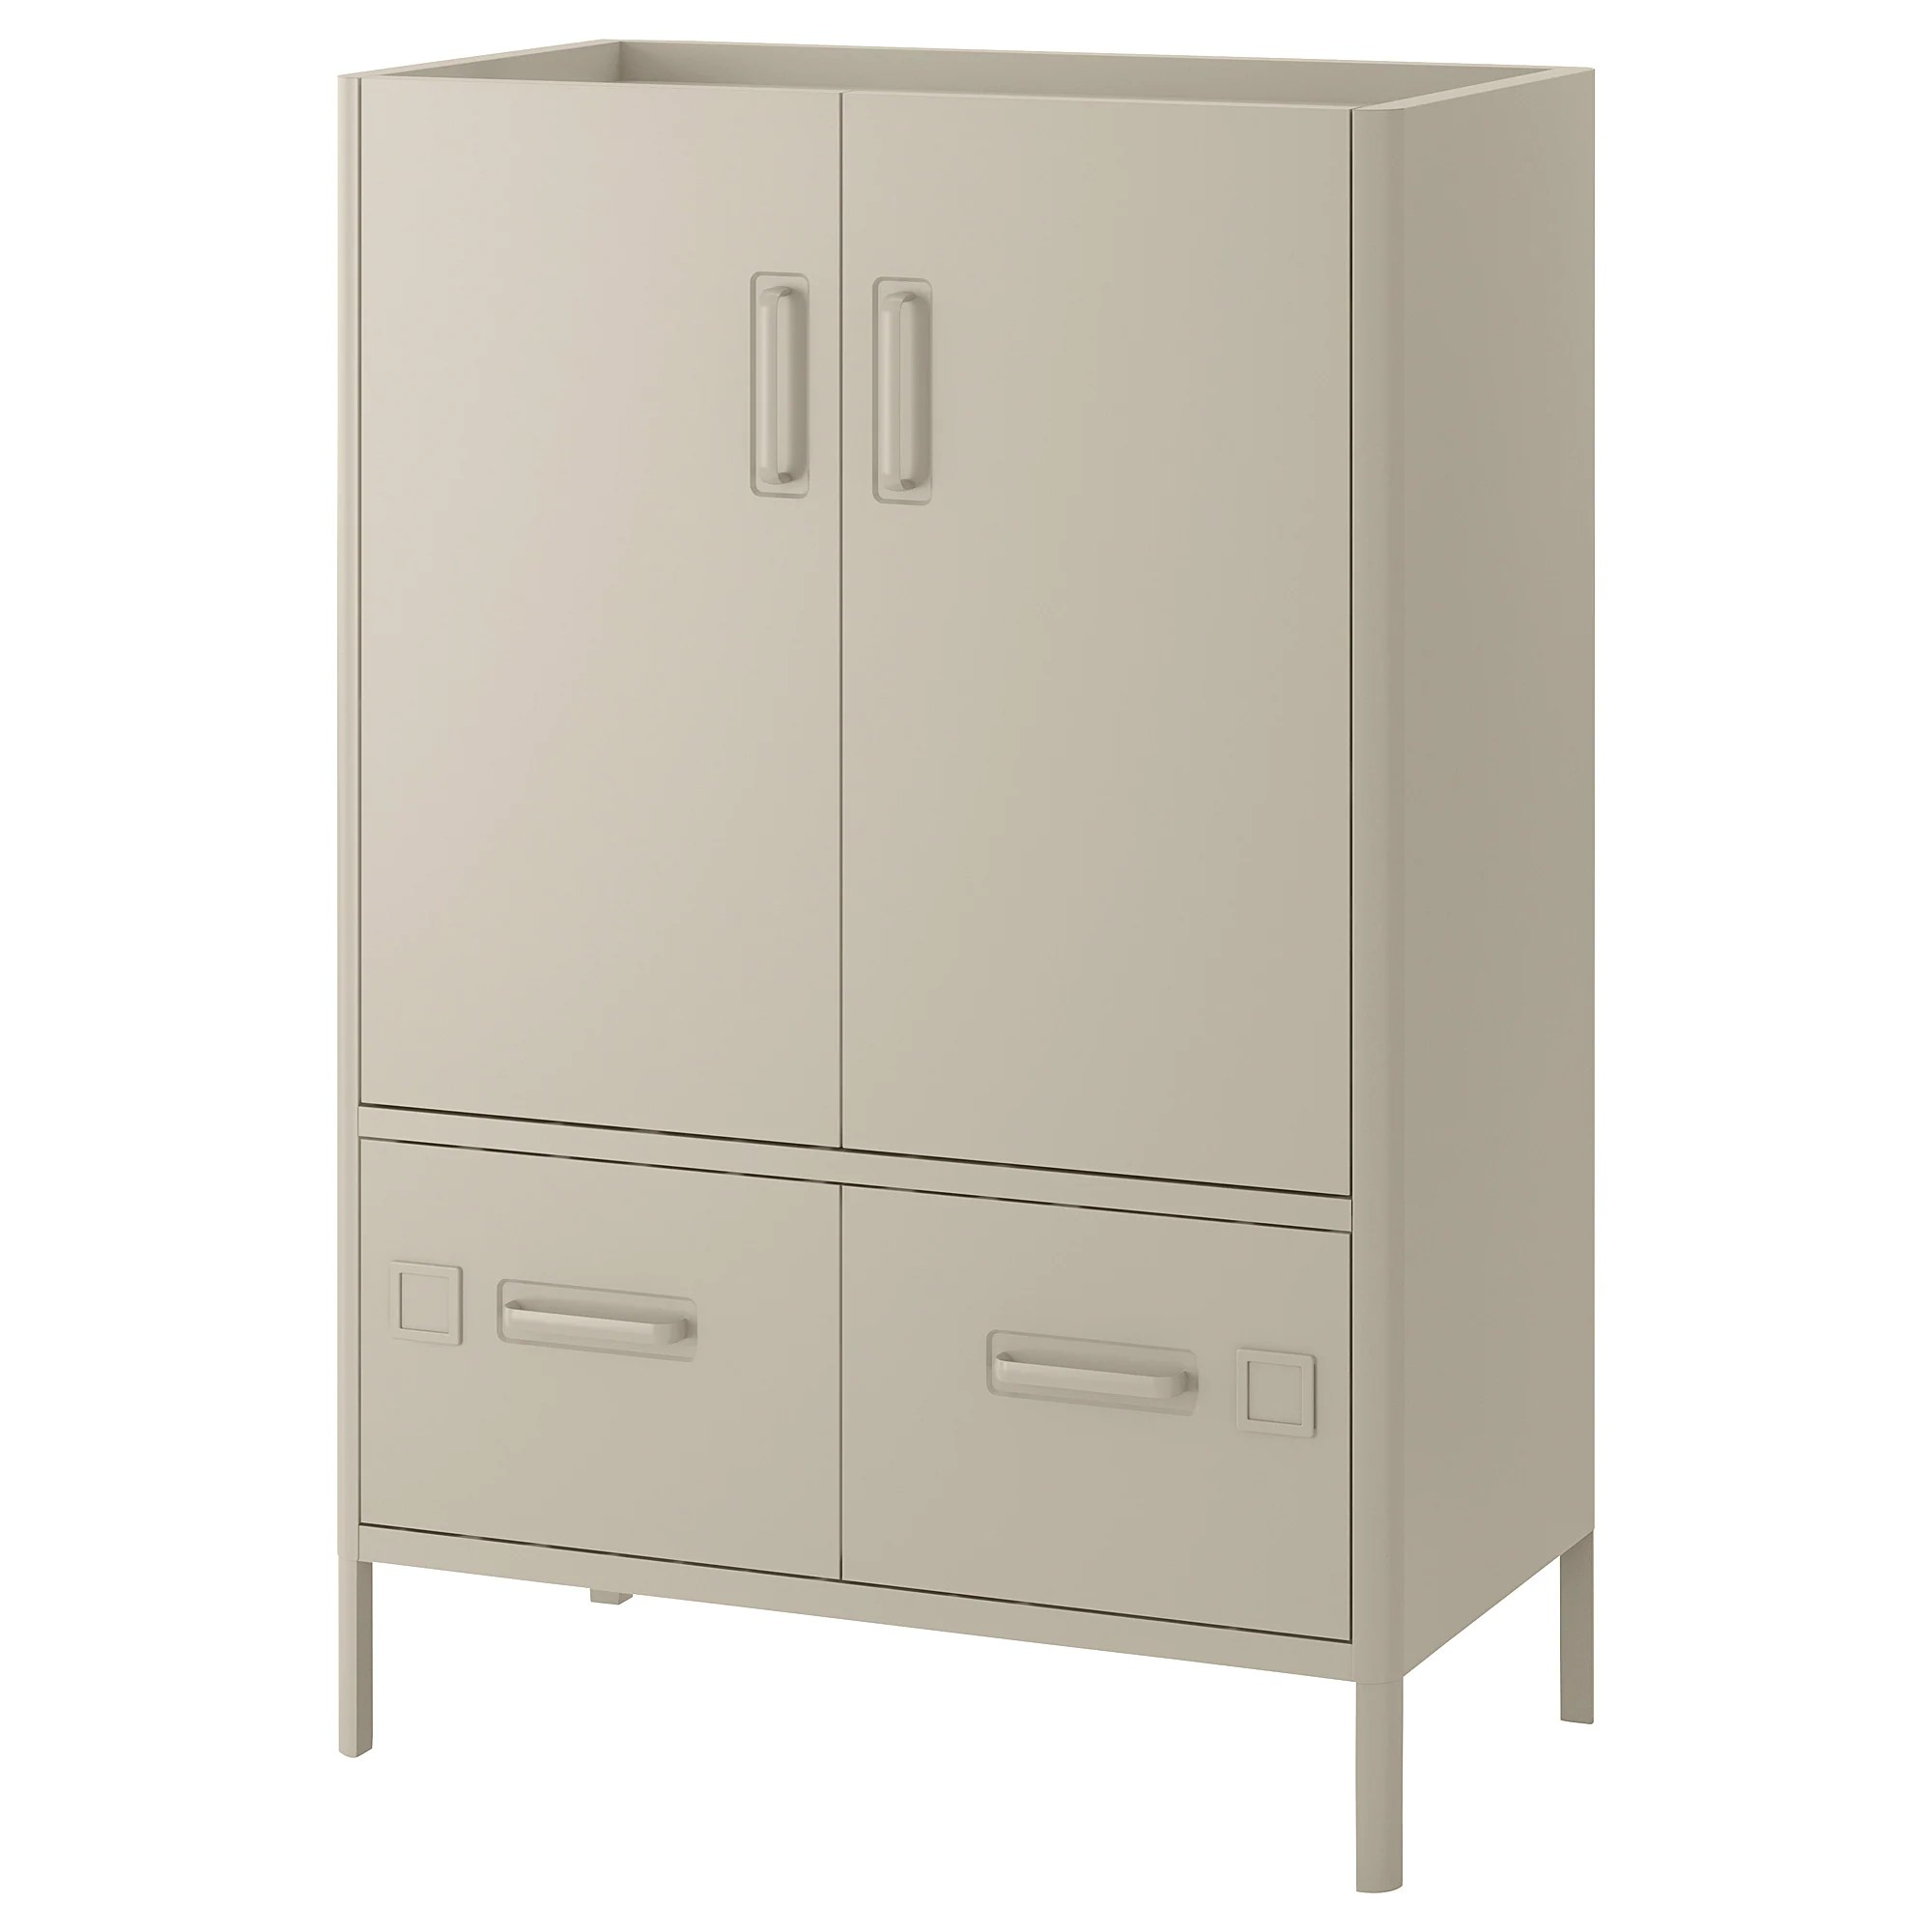 Cabinet Drawers Cabinet With Doors And Drawers IdÅsen Beige